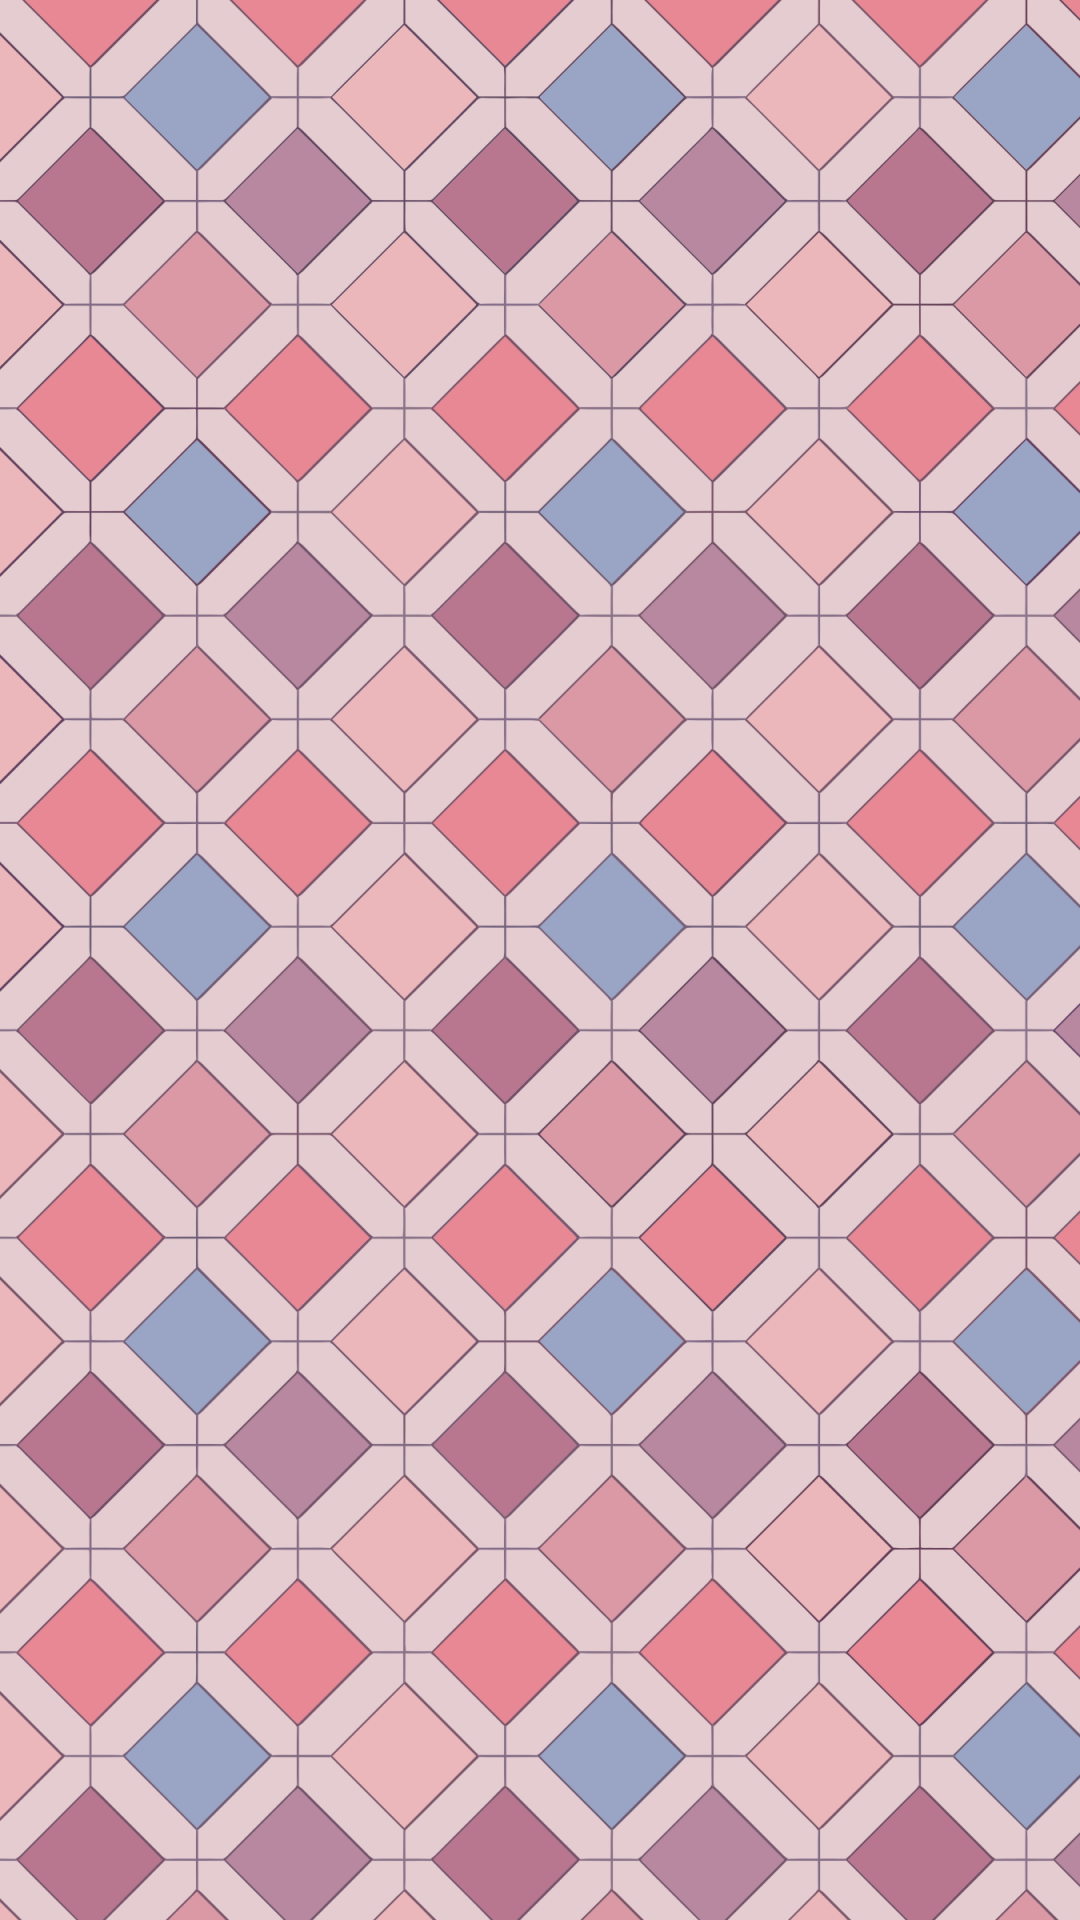 Geometric Pink And Grey Wallpaper Android Download in 2020